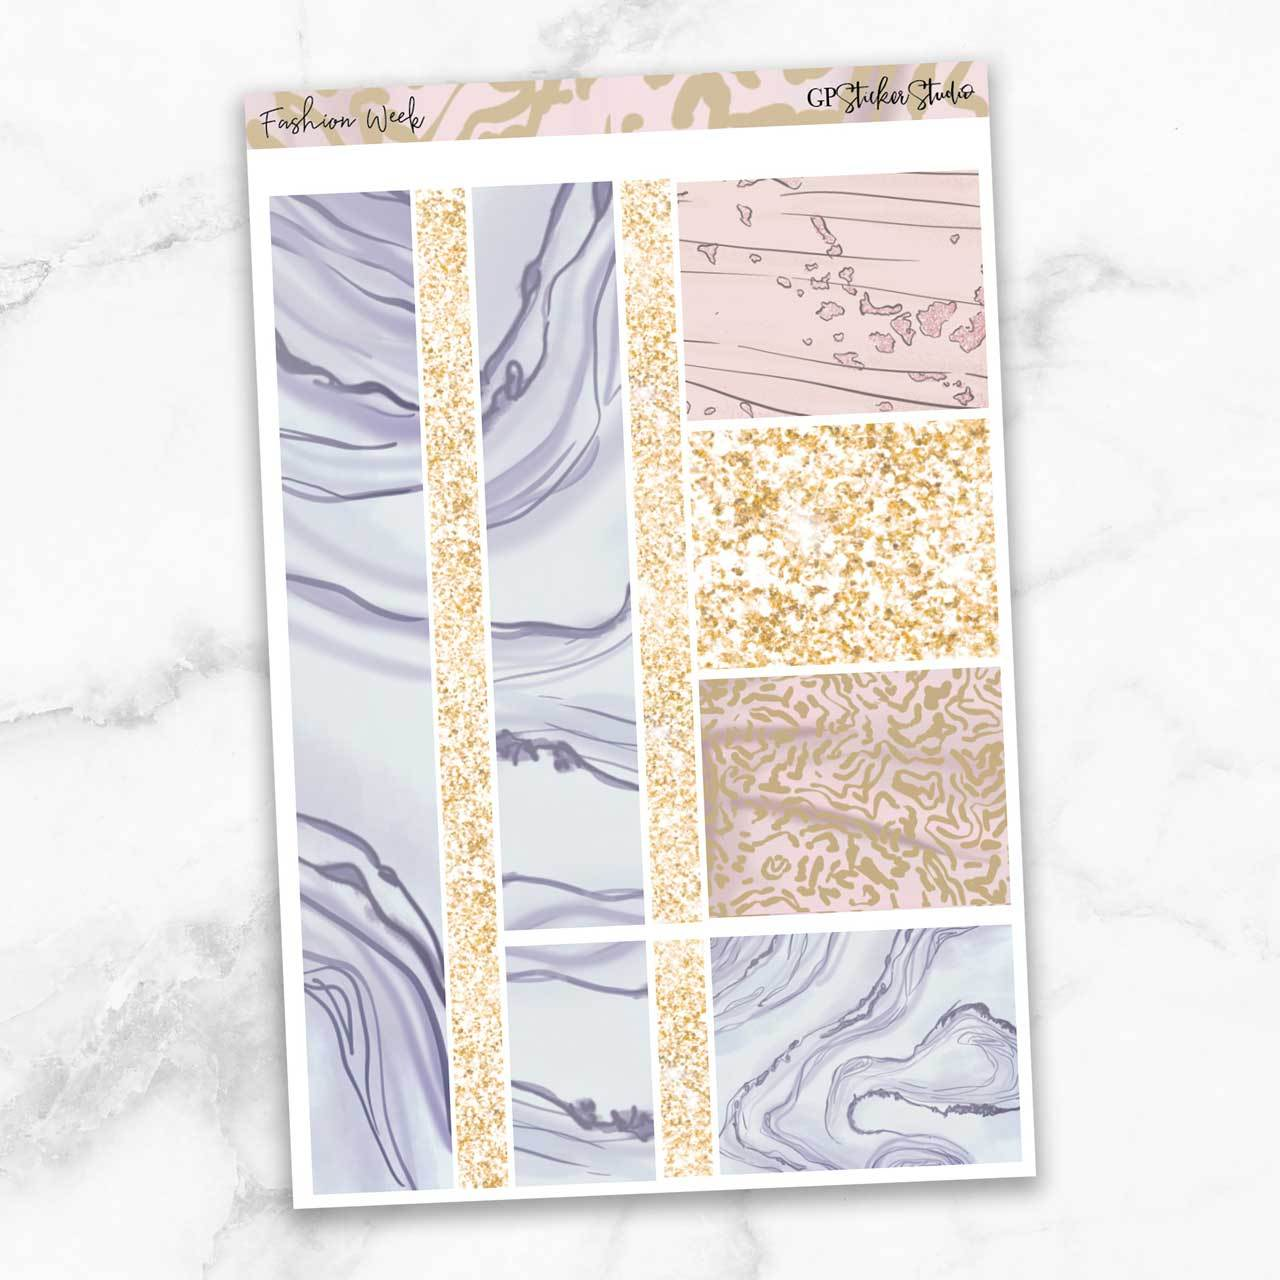 FASHION WEEK Washi Sheet Stickers-The GP Studio